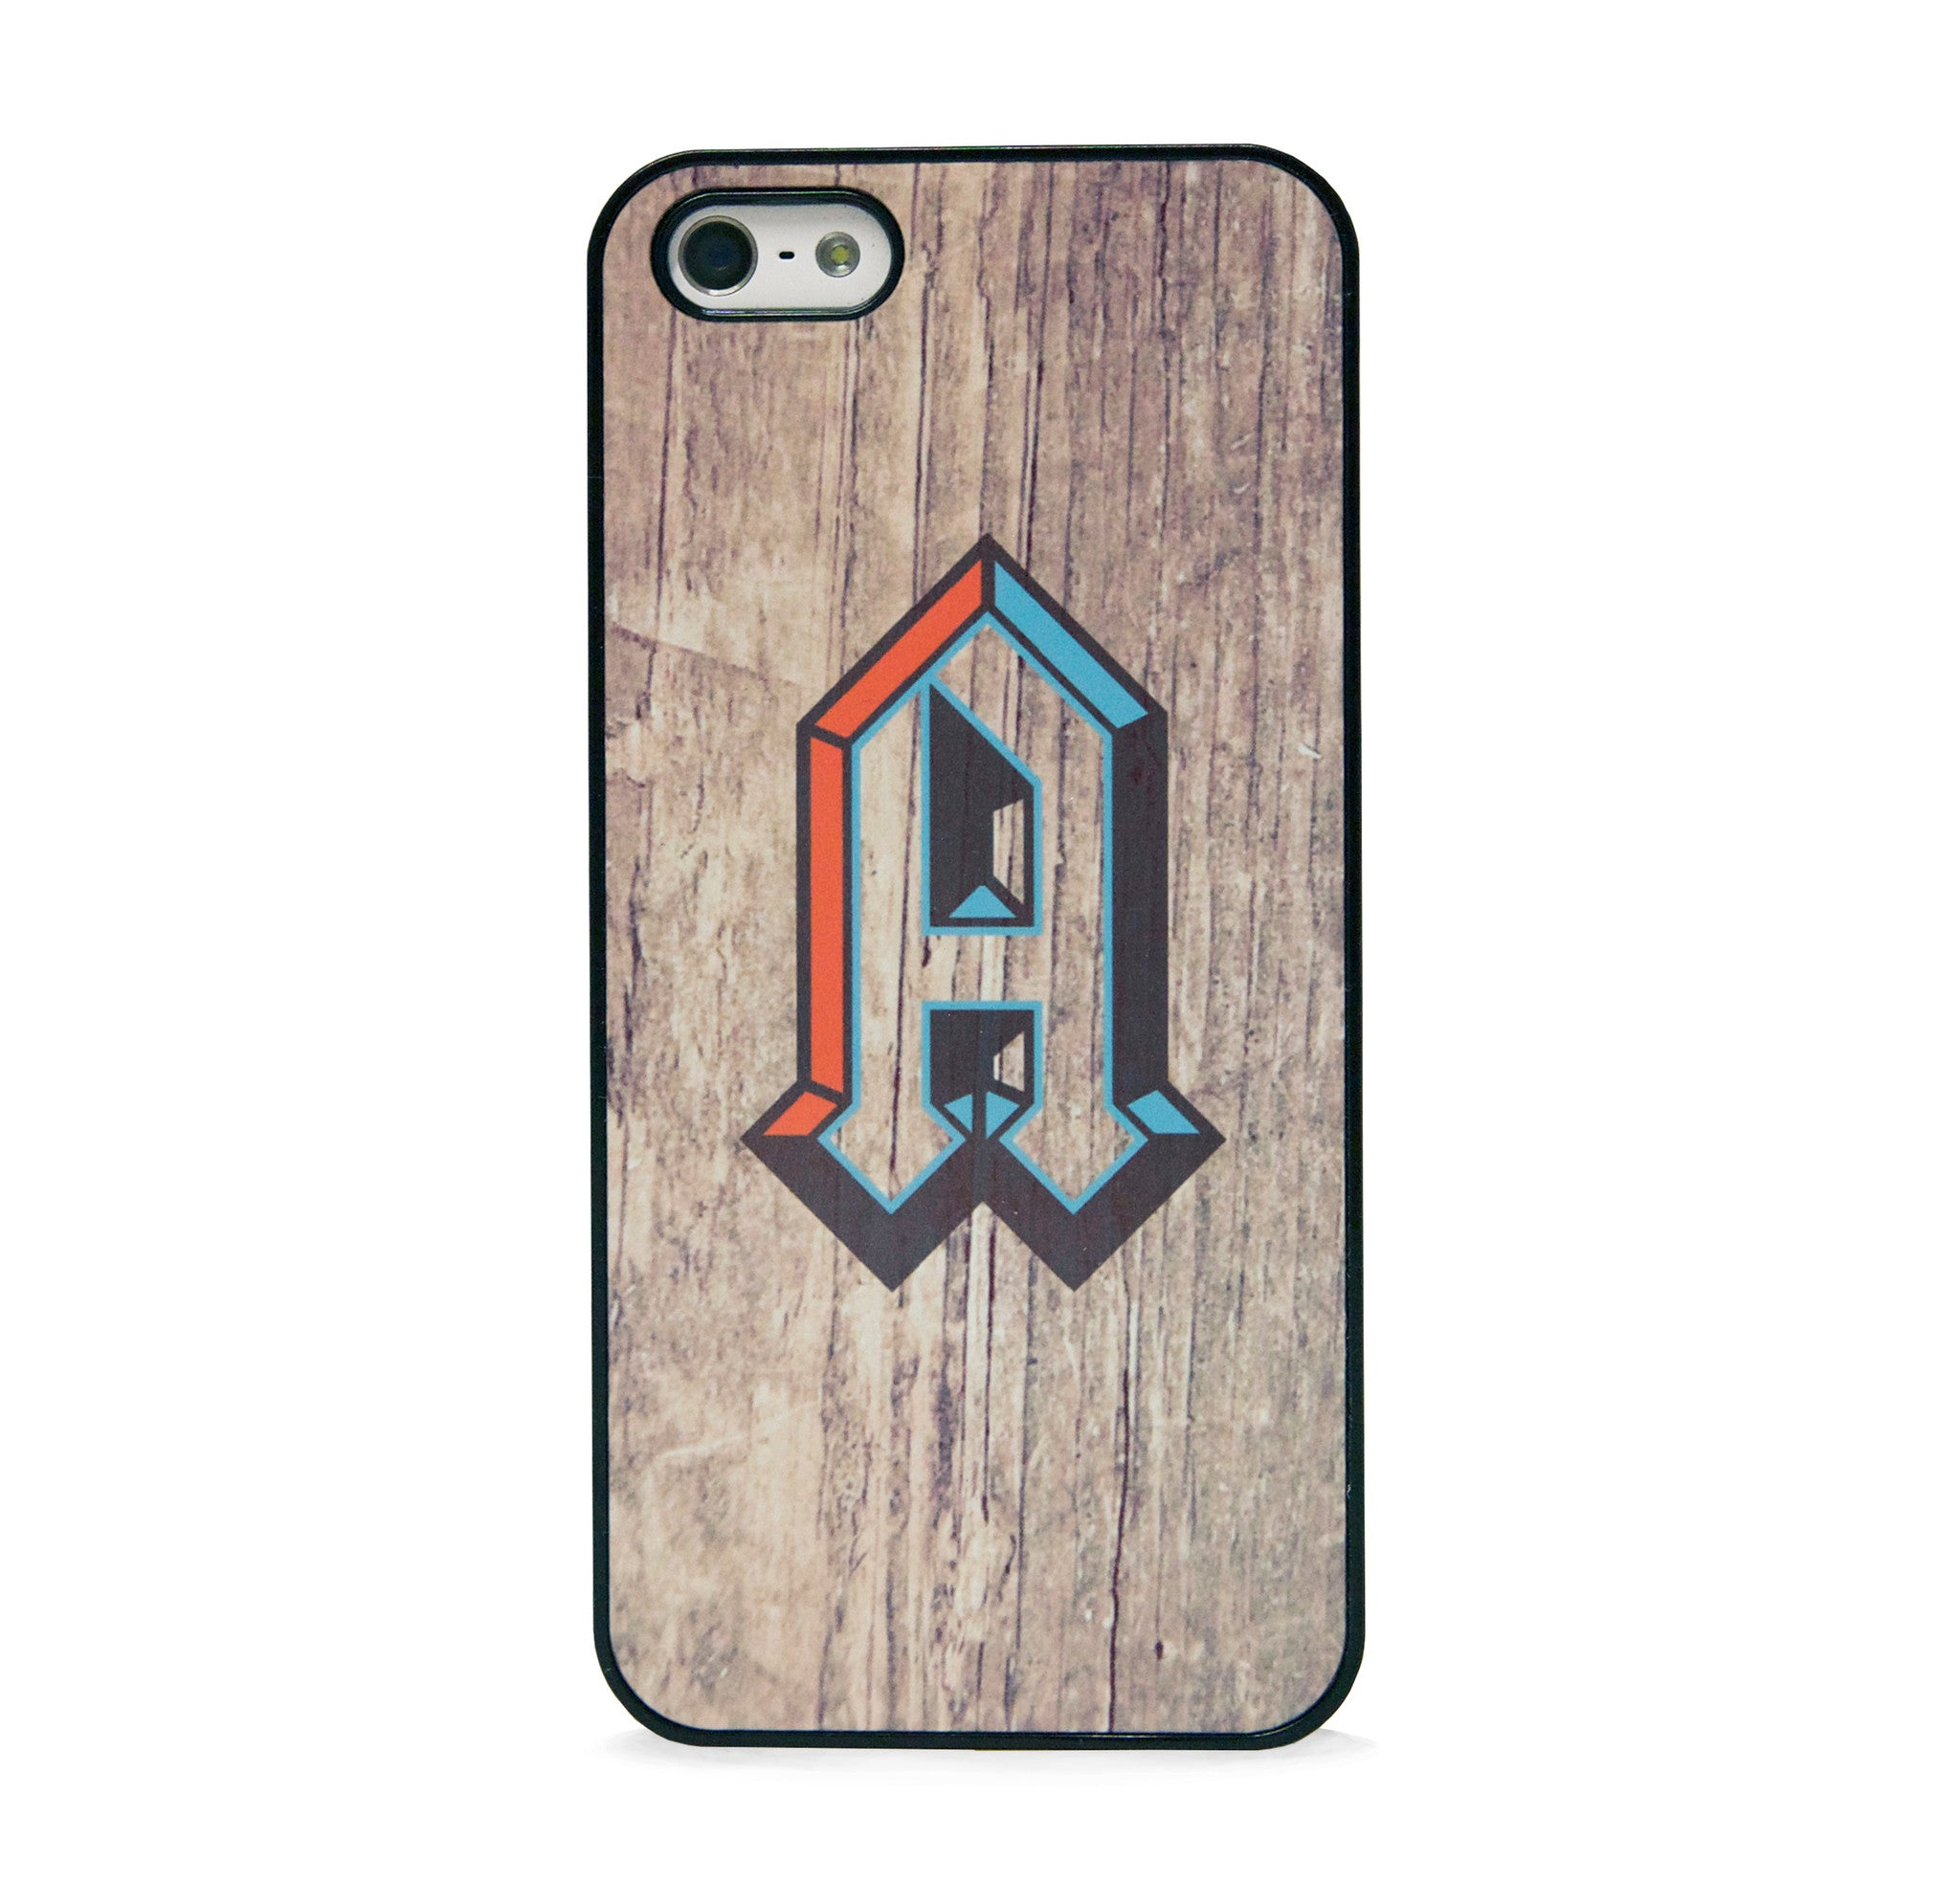 INITIAL A FOR IPHONE 5/5S